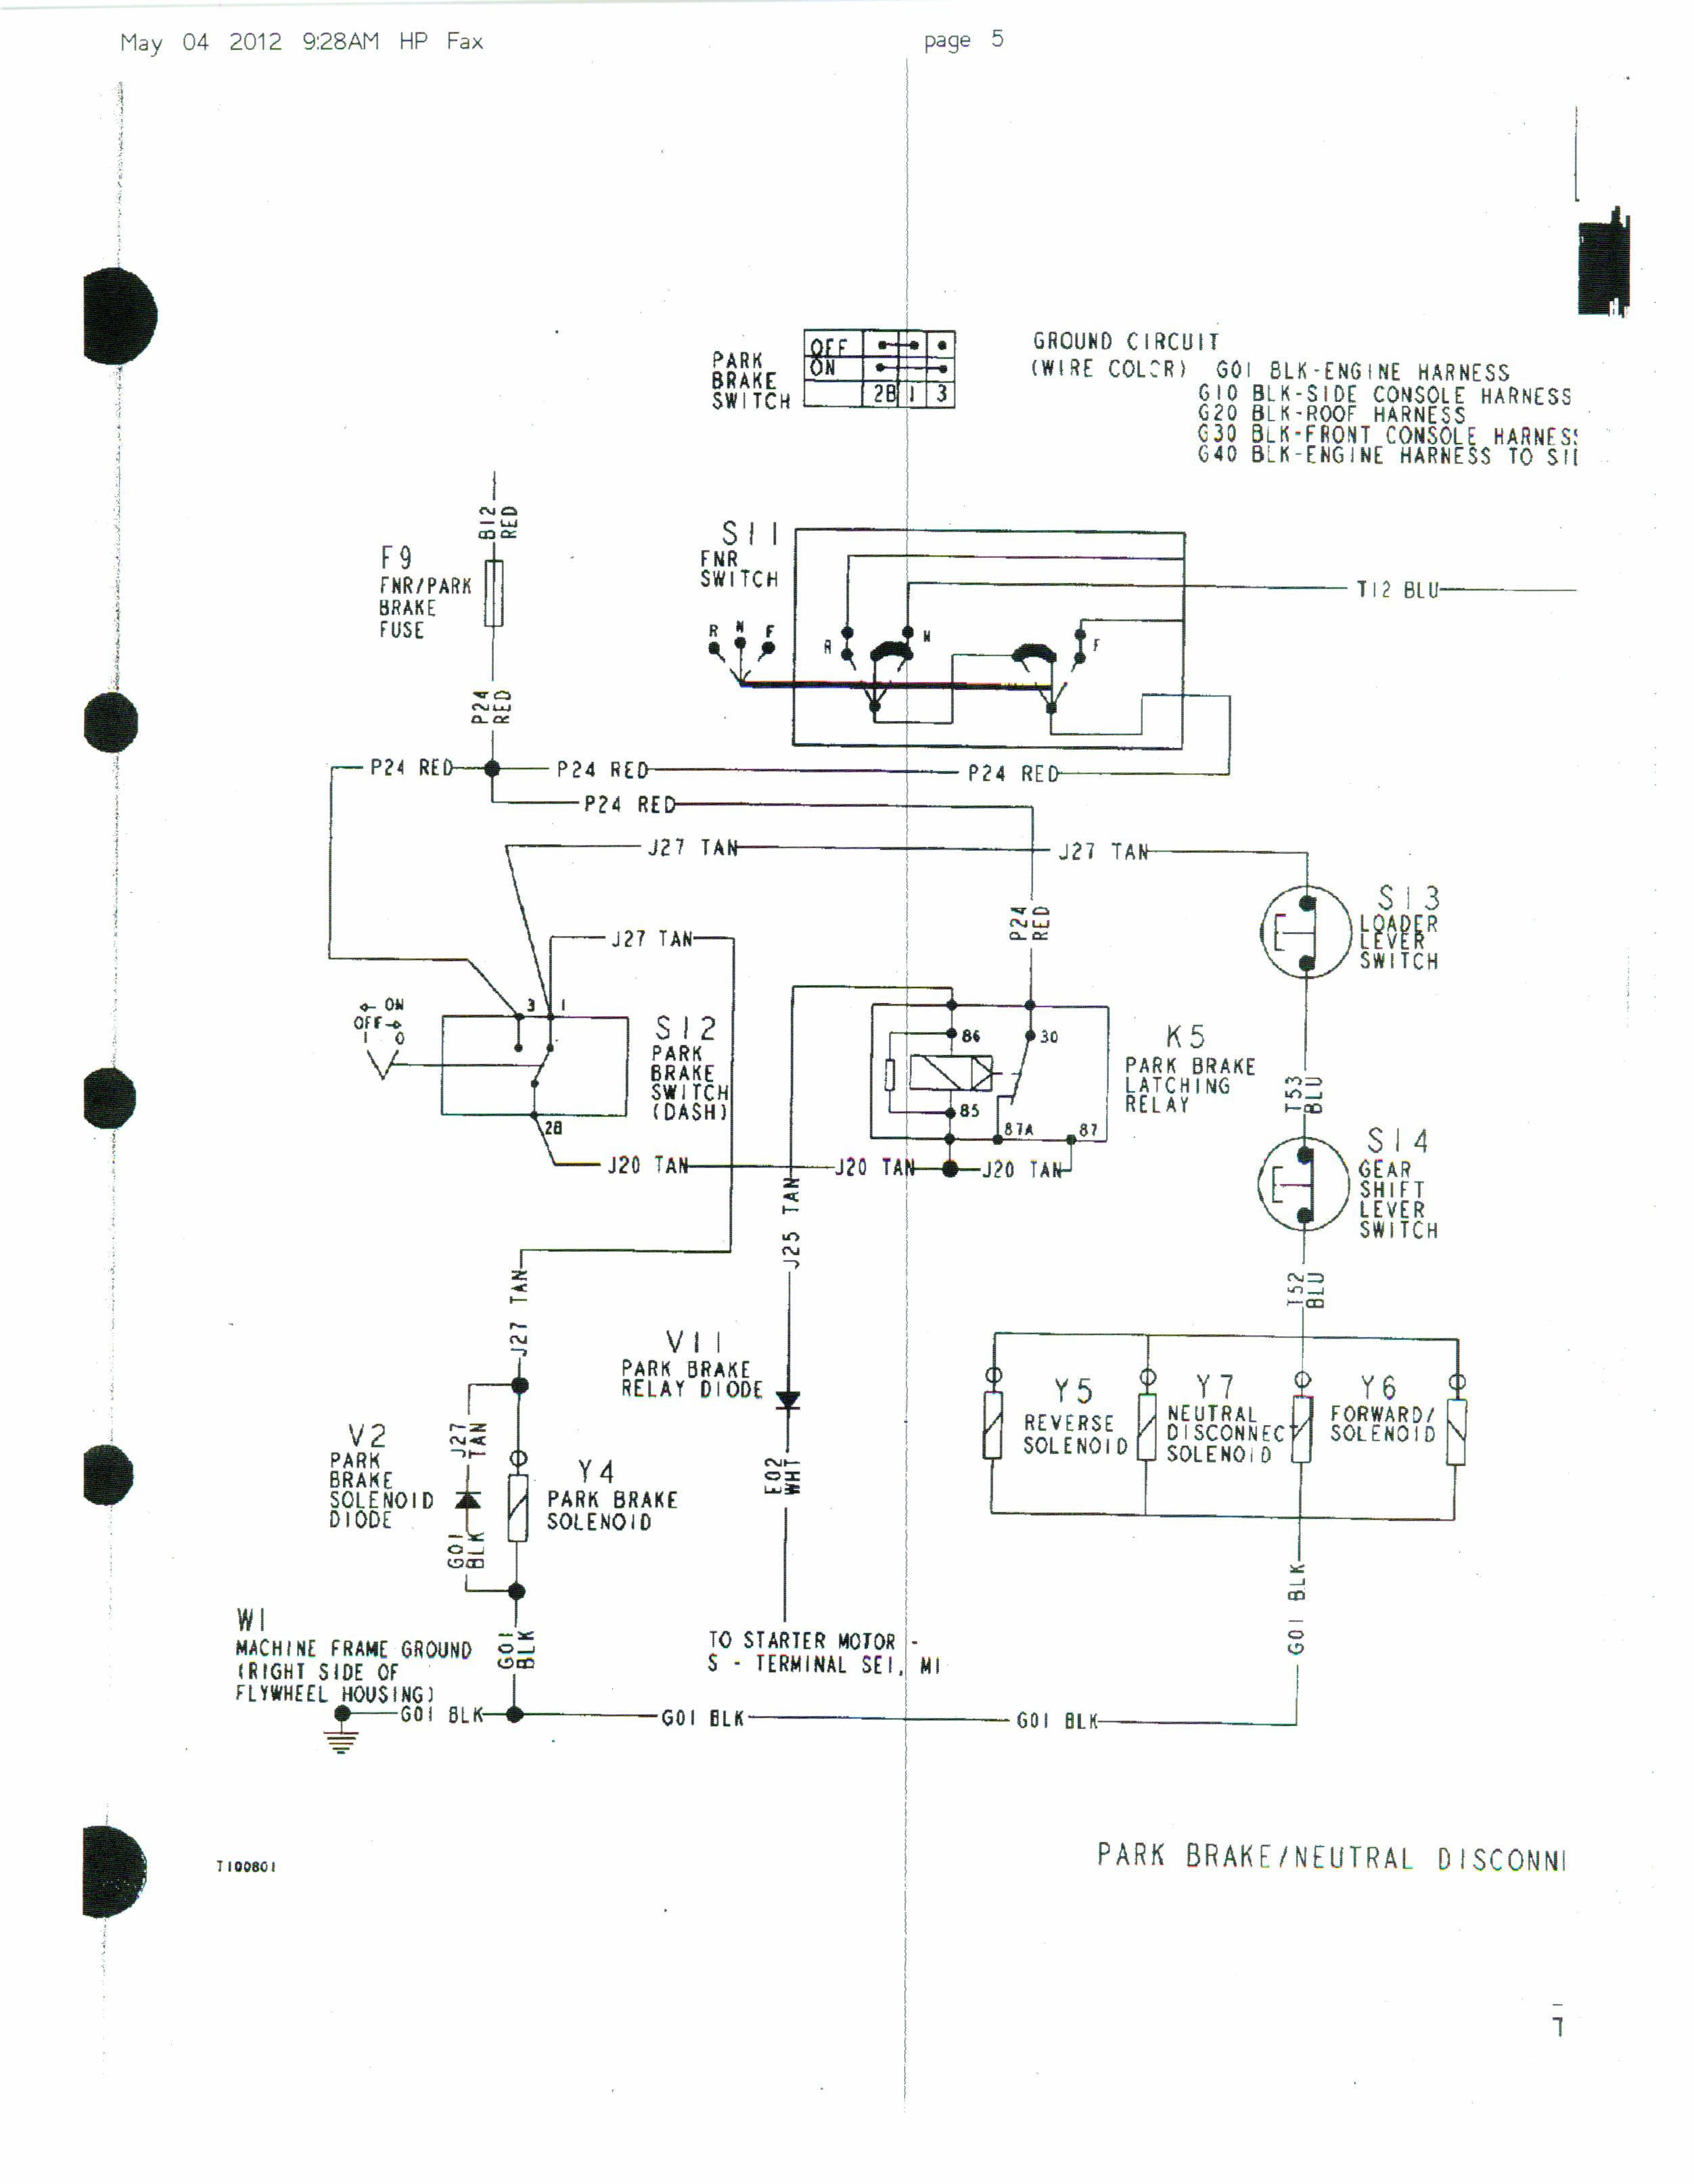 Pioneer Bypass Wiring Schematic | Wiring Diagram - Pioneer Parking Brake Bypass Wiring Diagram